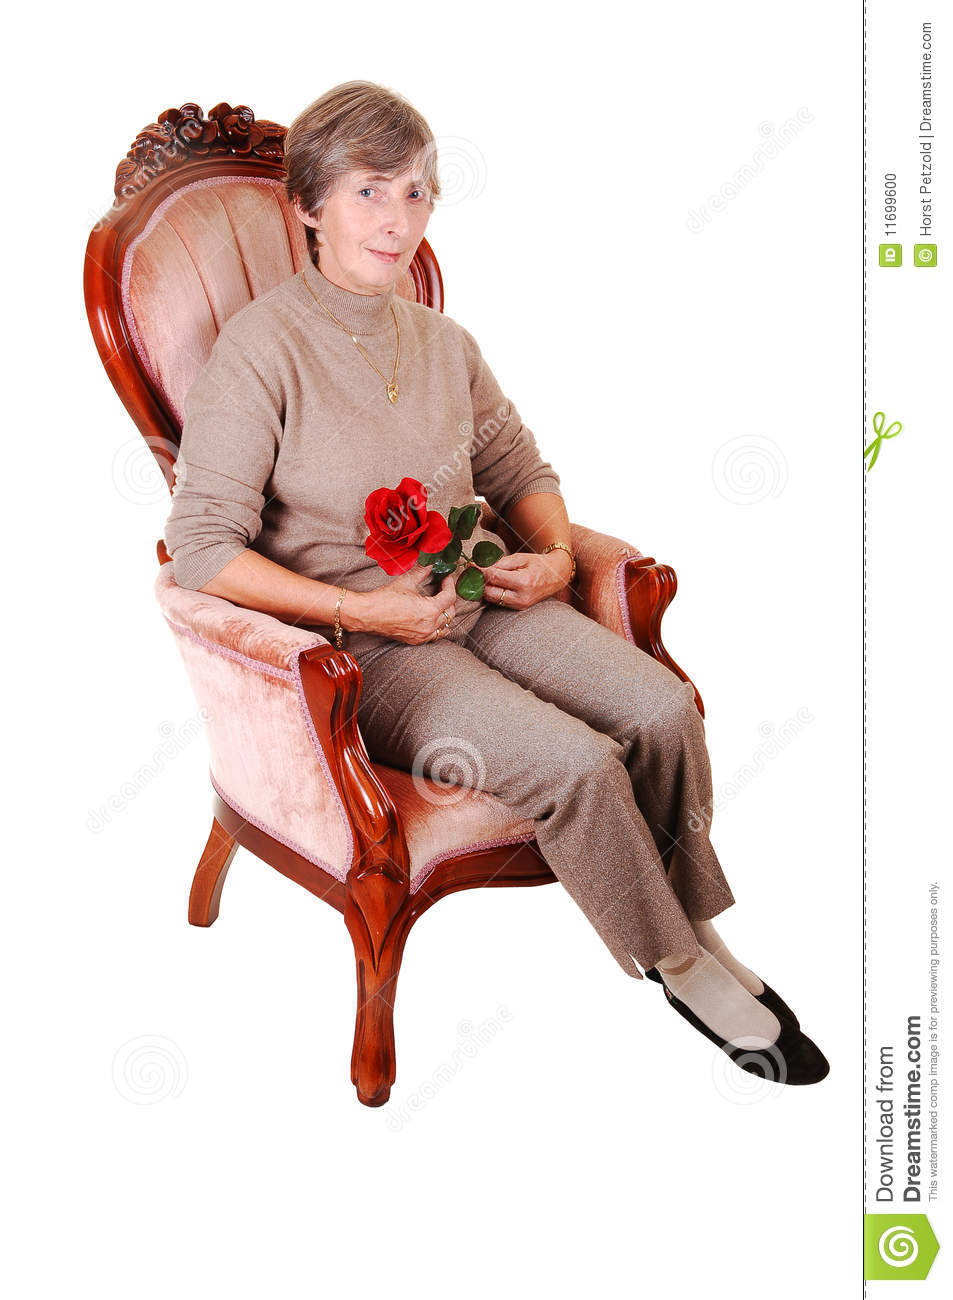 Balance Cushion For Chair In A Chair http://www.dreamstime.com/stock-photo-lady-sitting-chair ...